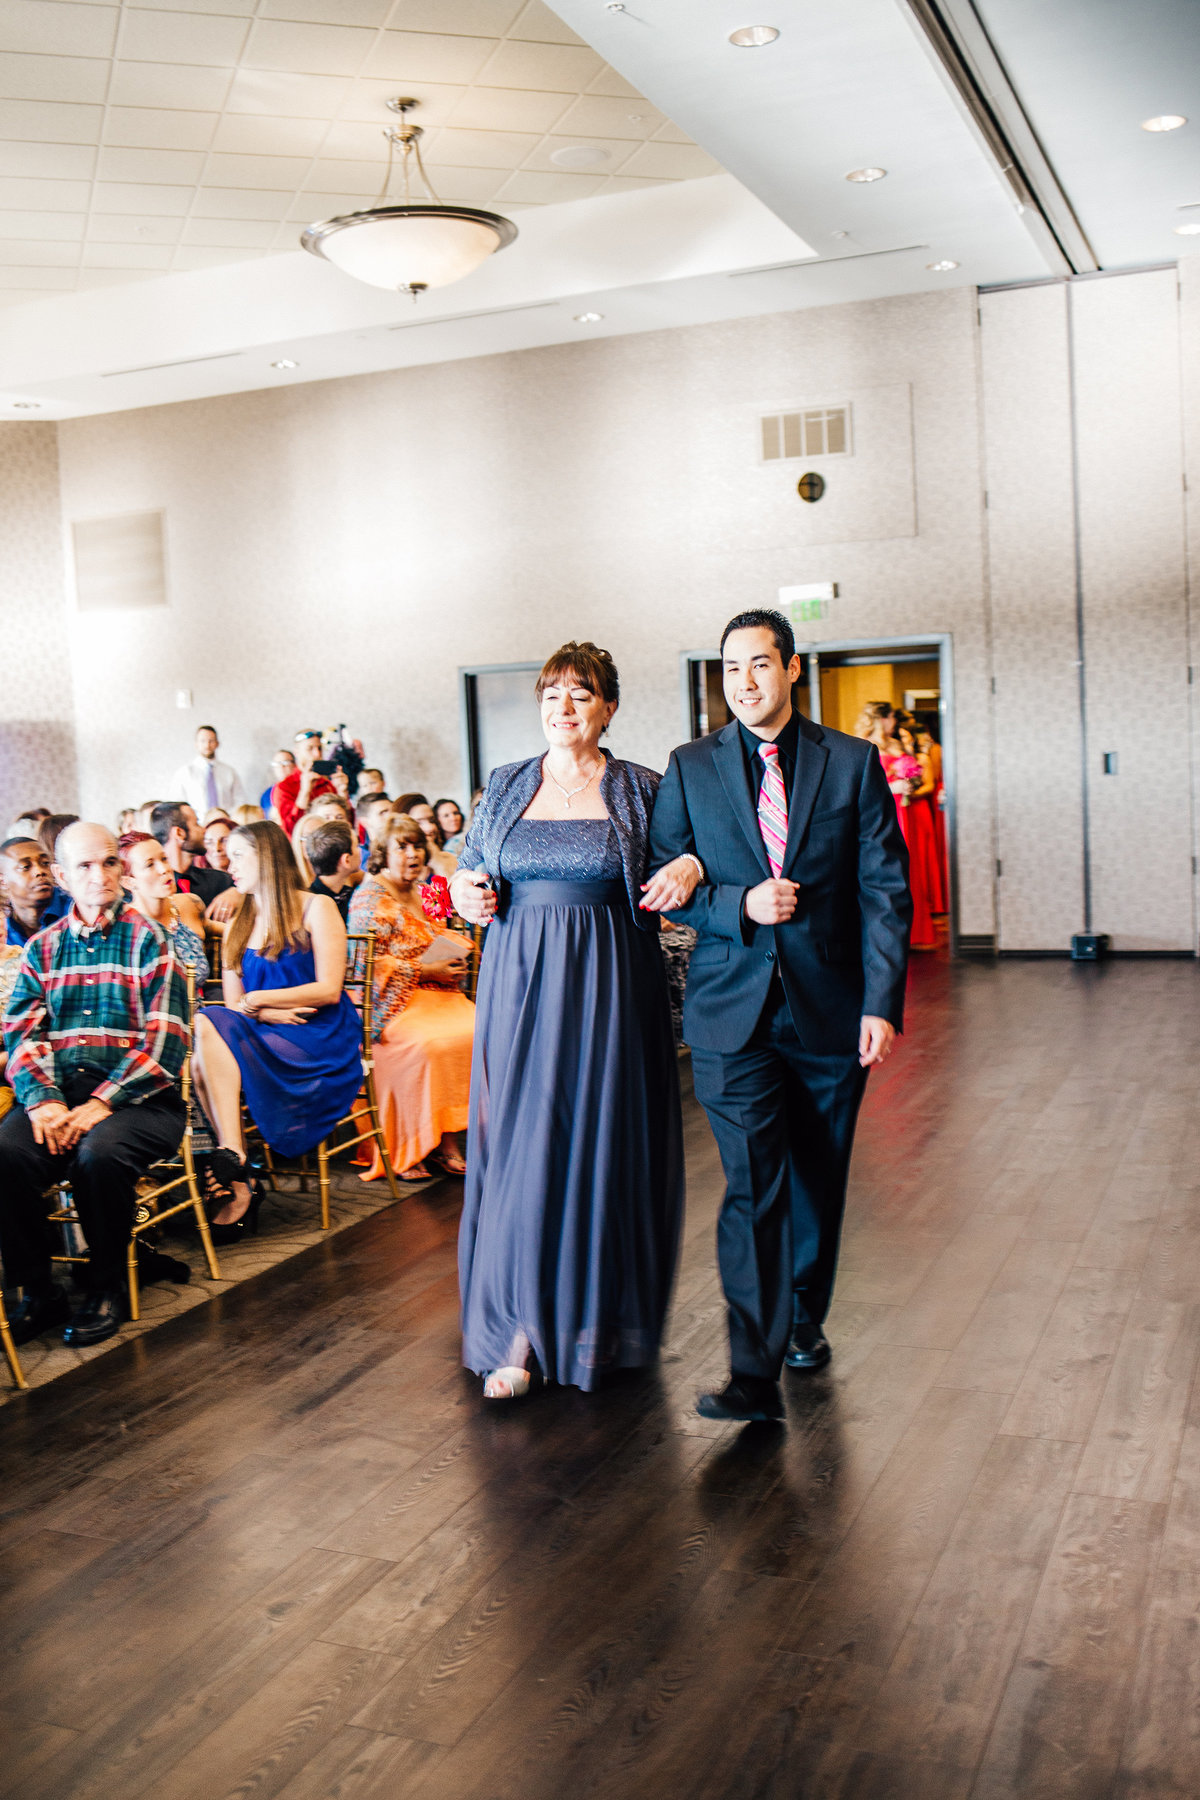 Kimberly_Hoyle_Photography_Milam_The_Back_Center_Melbourne_Wedding-22